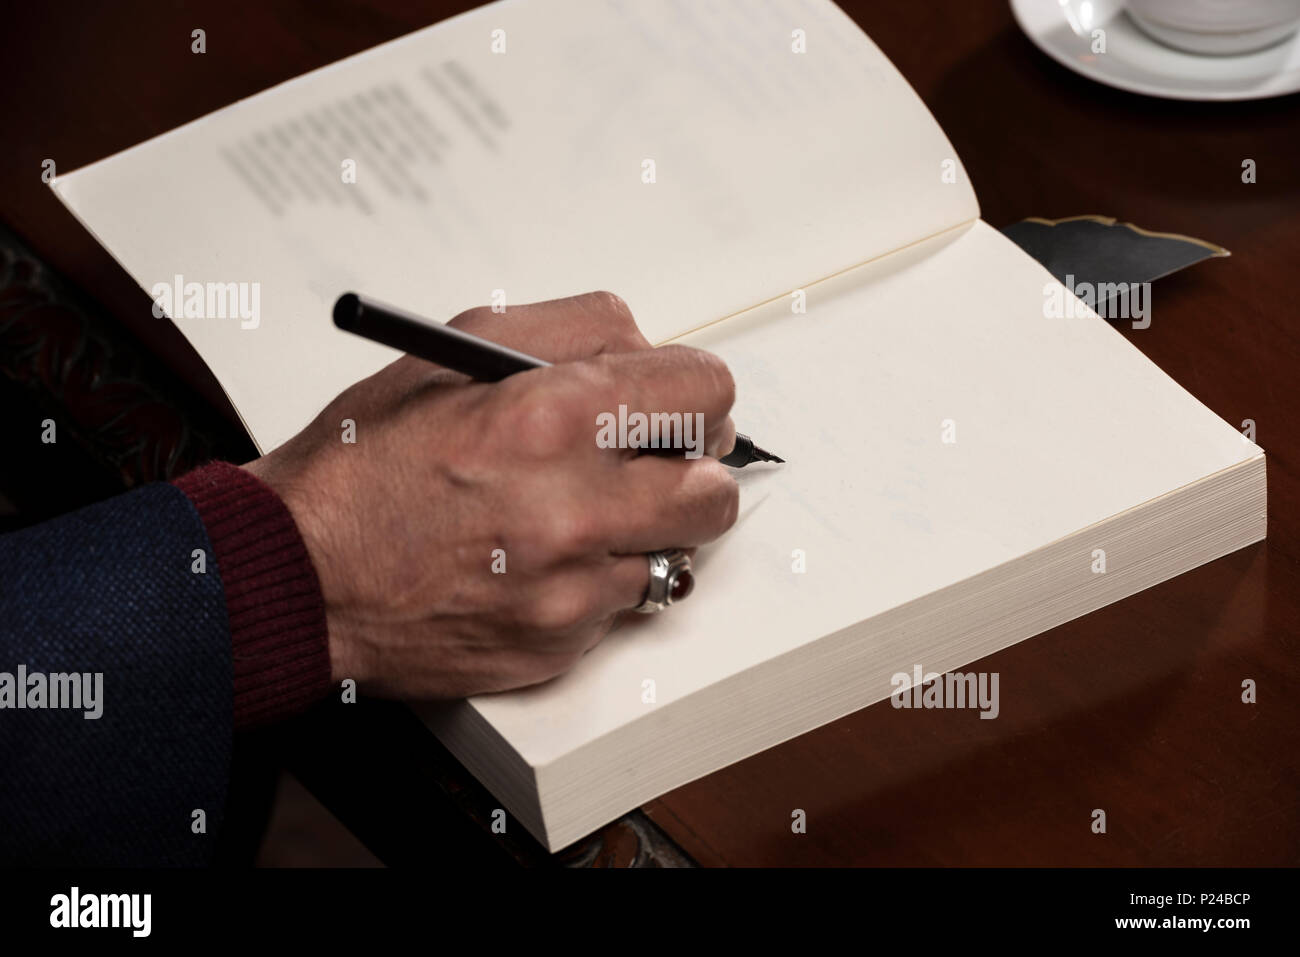 Man hand with pen writing on book. - Stock Image